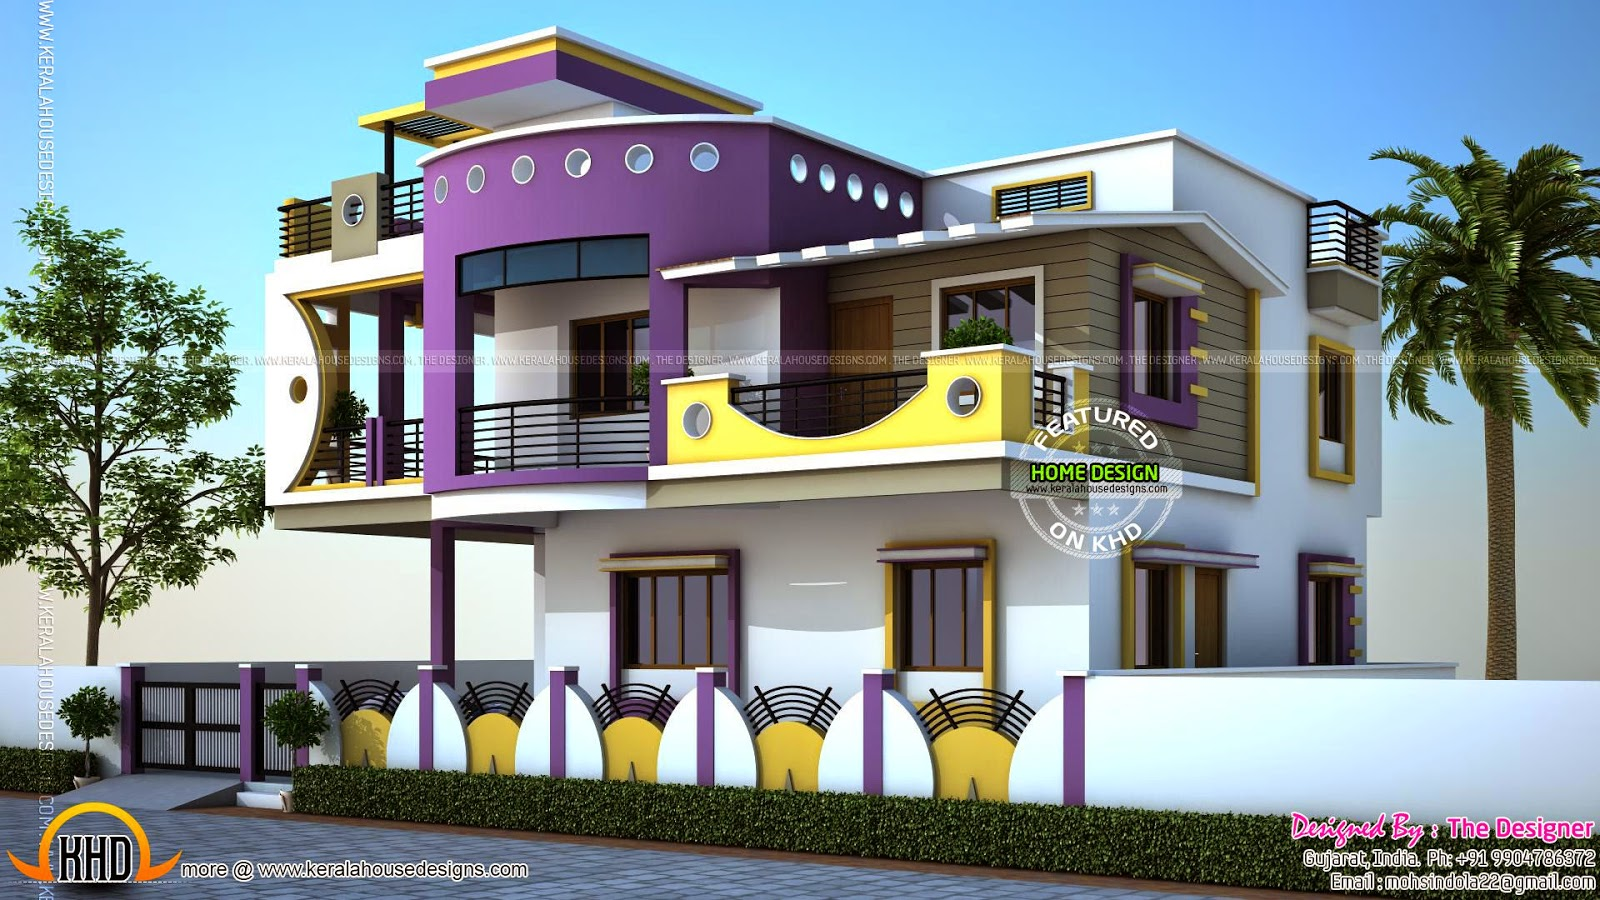 House exterior designs in contemporary style kerala home for Home designs exterior